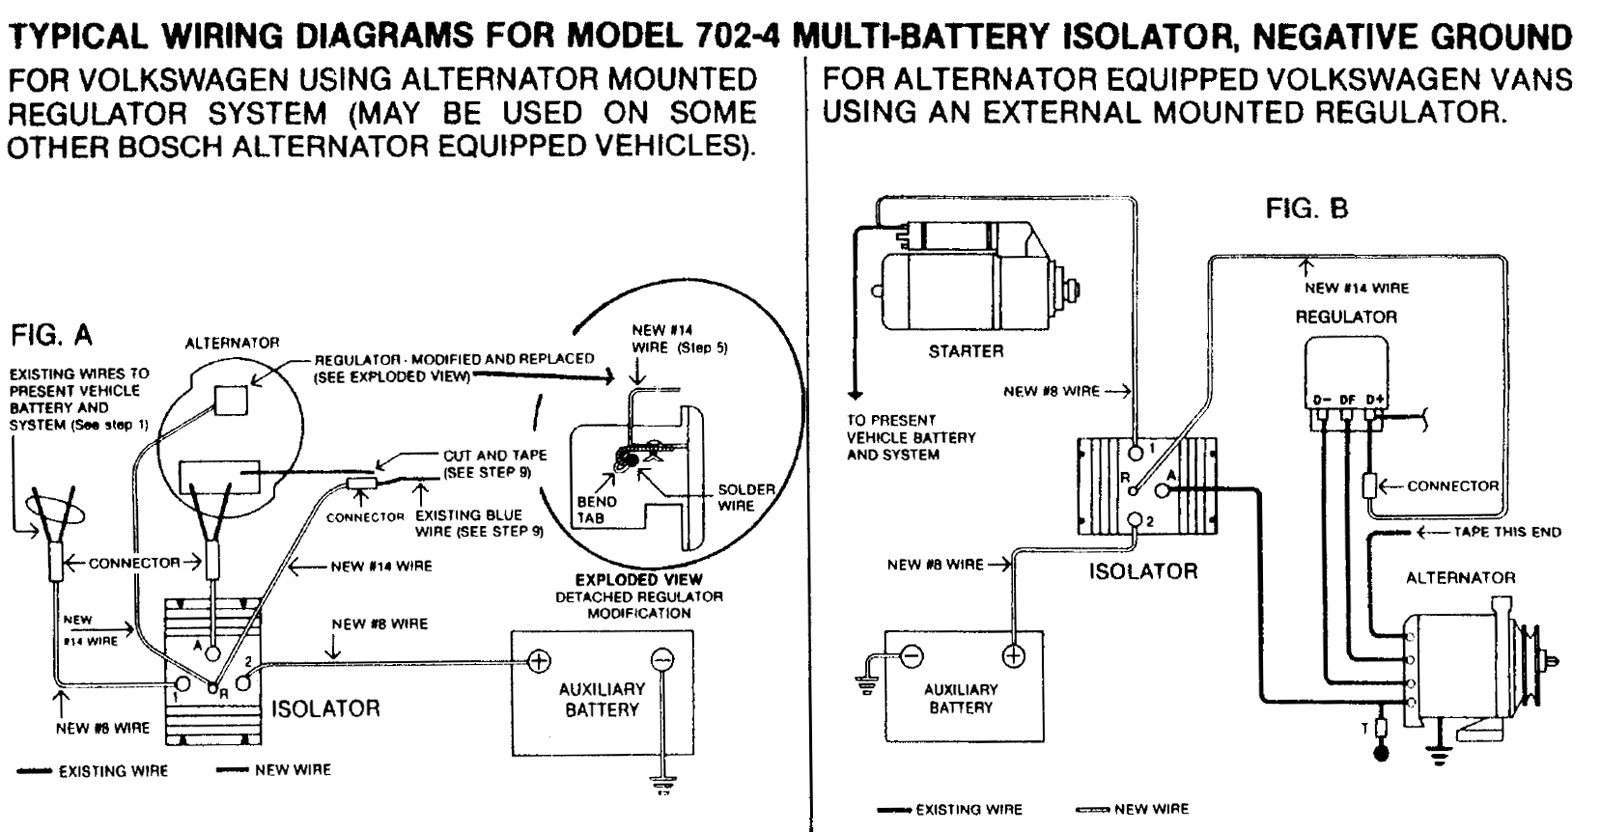 Sure power battery isolator wiring diagram sure power industries image may have been reduced in size click image to view fullscreen swarovskicordoba Choice Image